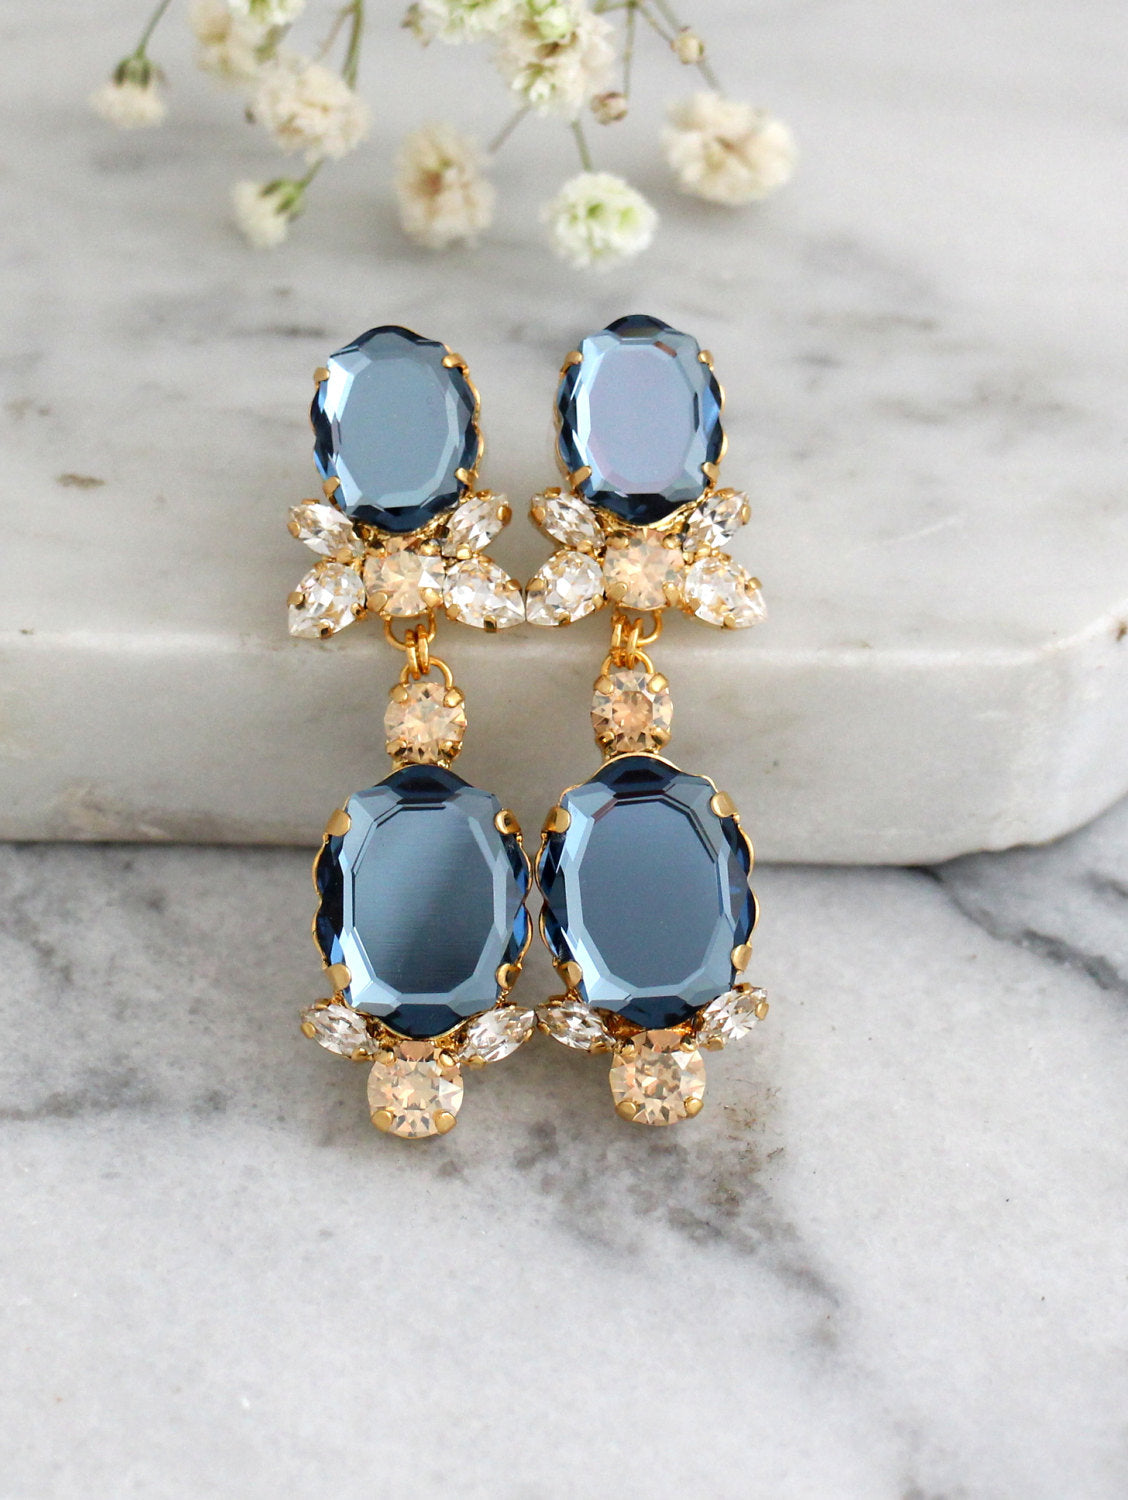 Baroque Bridal Blue Navy Crystal Swarovski Chandelier Earrings